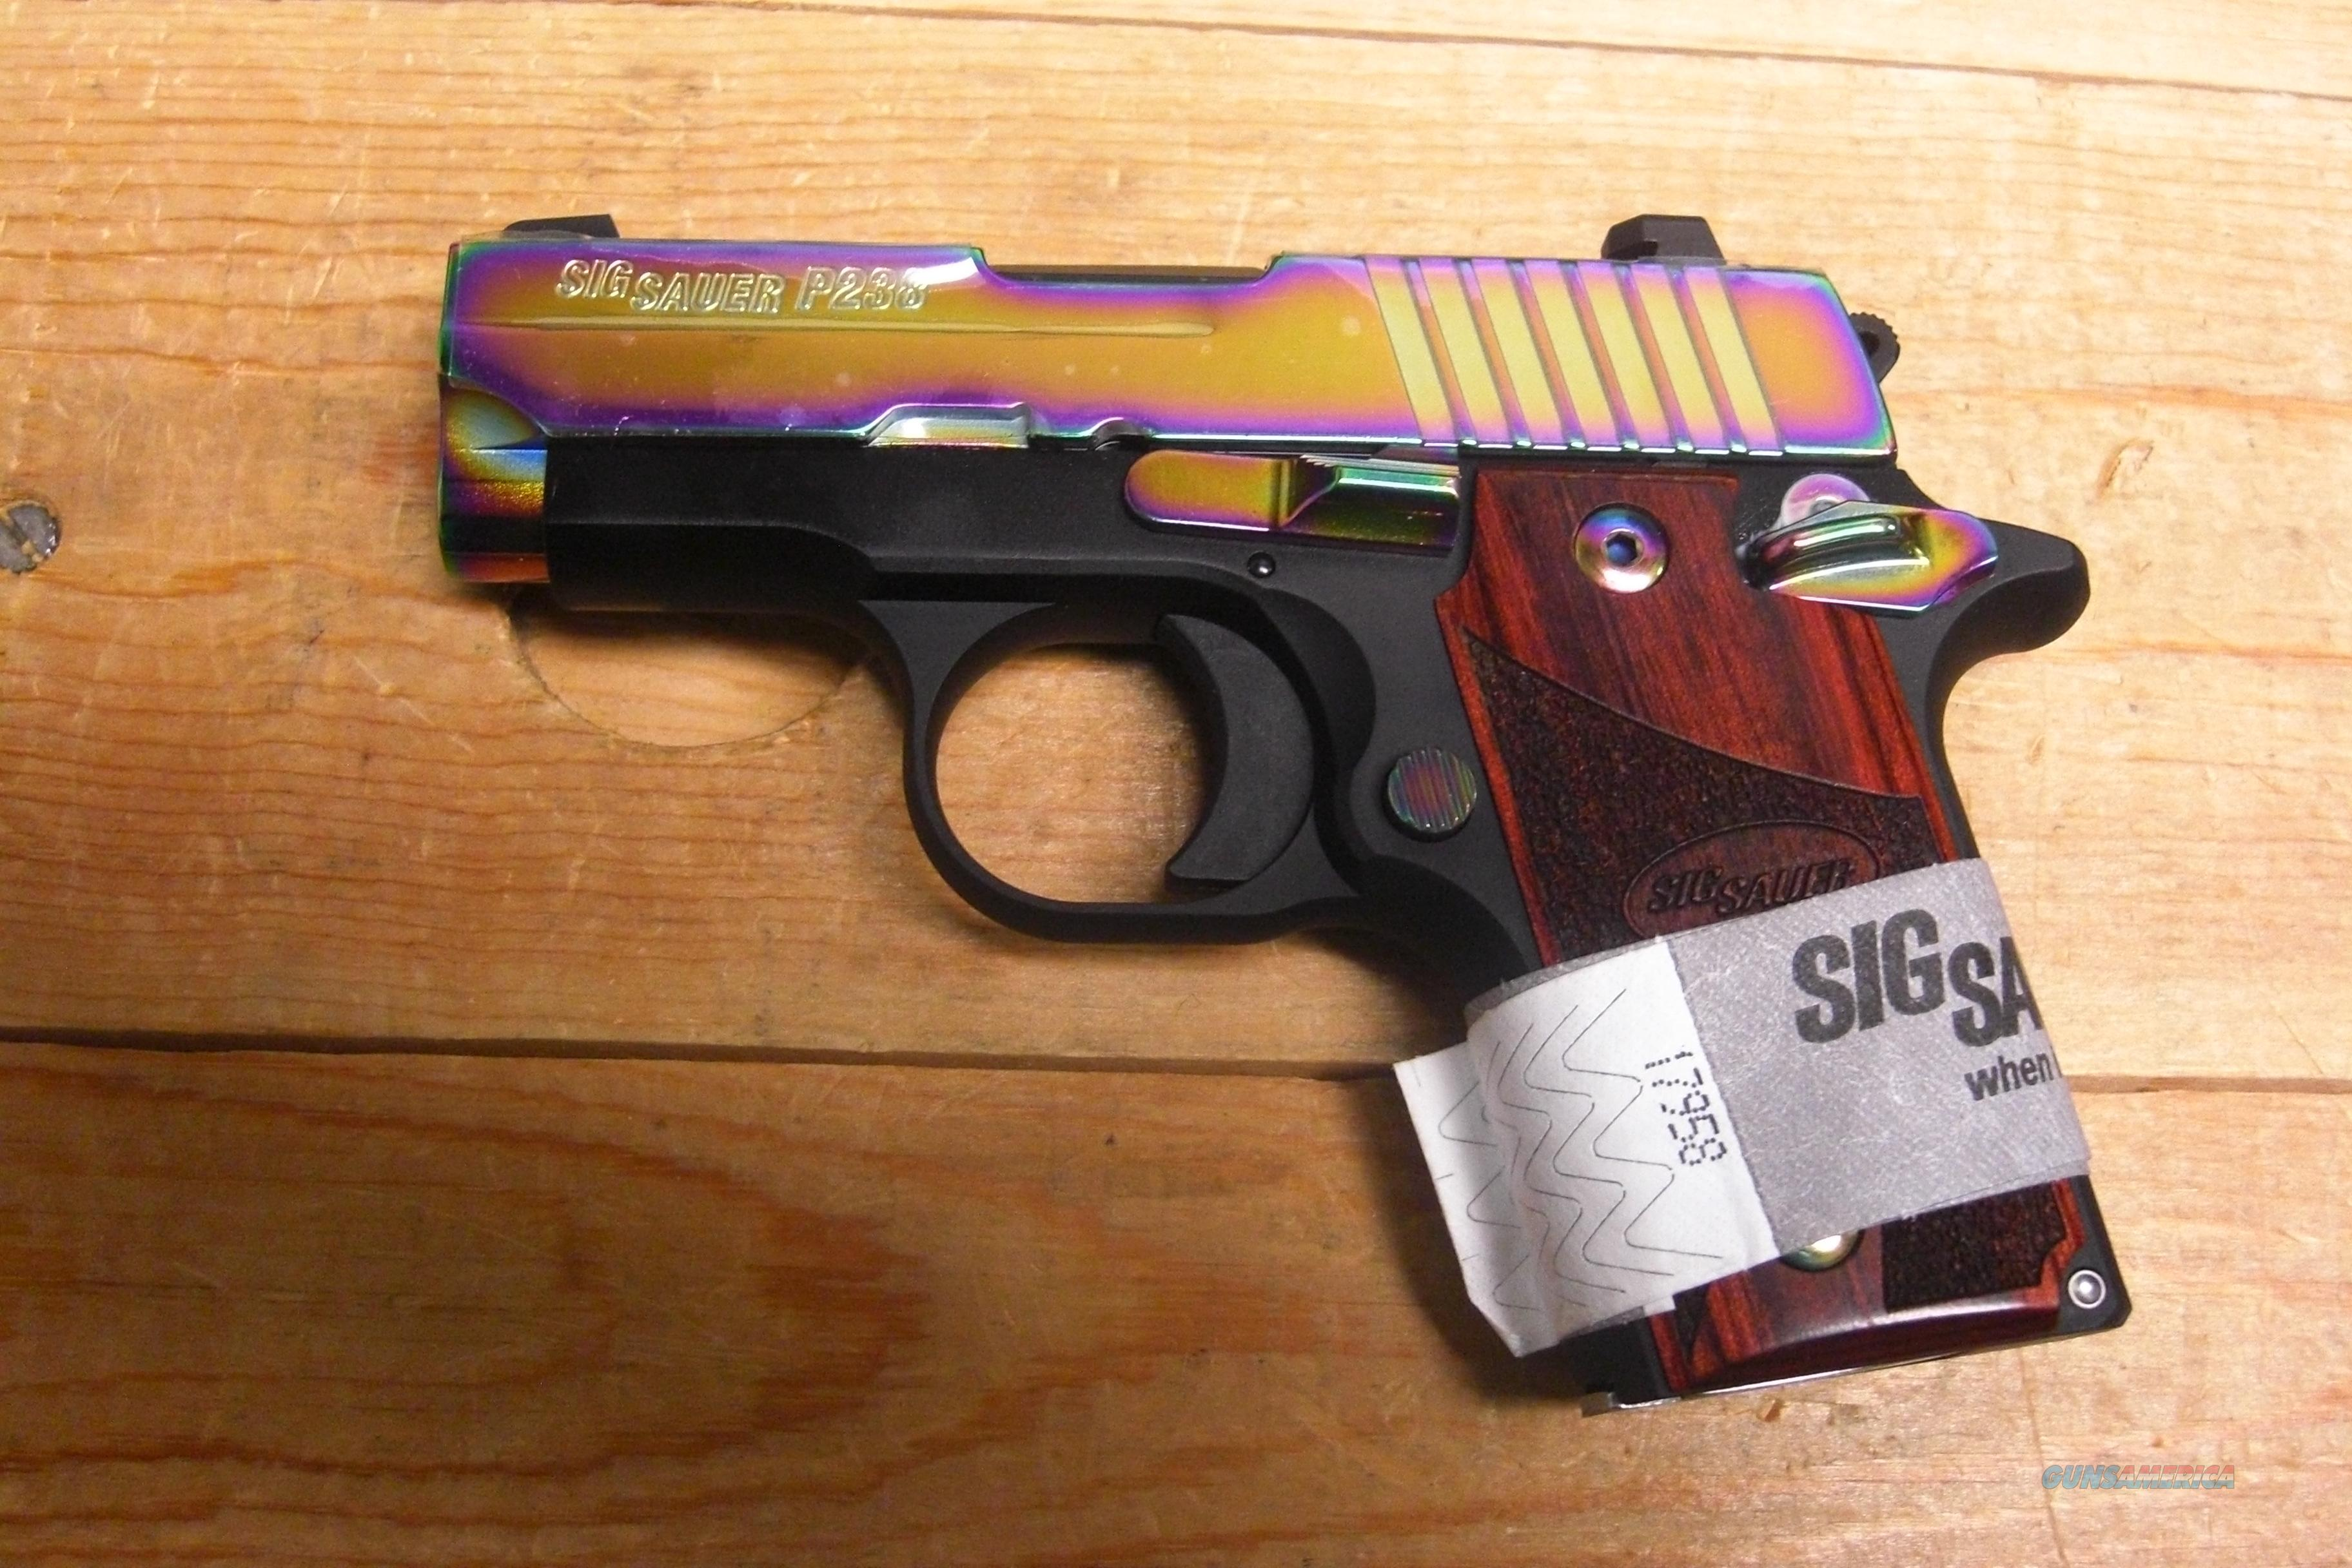 P238 w/Rainbow Slide  Guns > Pistols > Sig - Sauer/Sigarms Pistols > Other